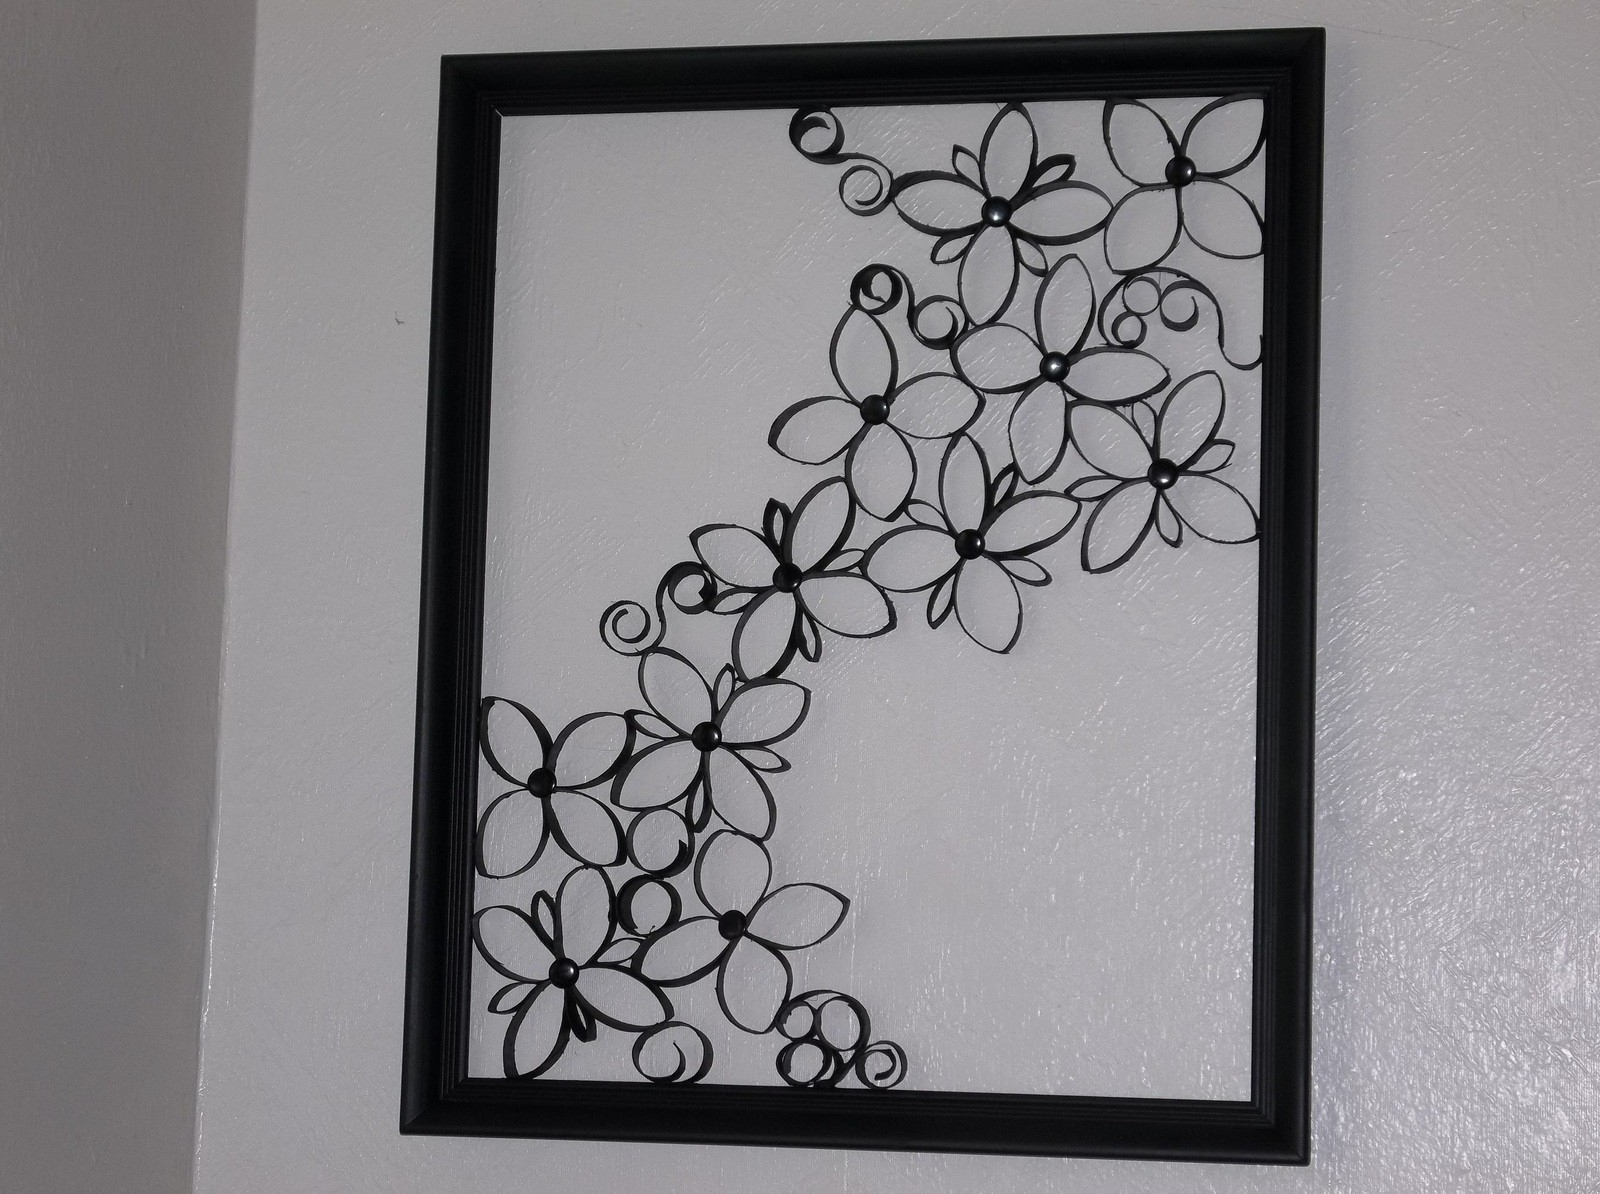 Faux Wrought Iron Wall Art For Under $5 · How To Make A Paper Roll For Current Iron Wall Art (View 6 of 20)